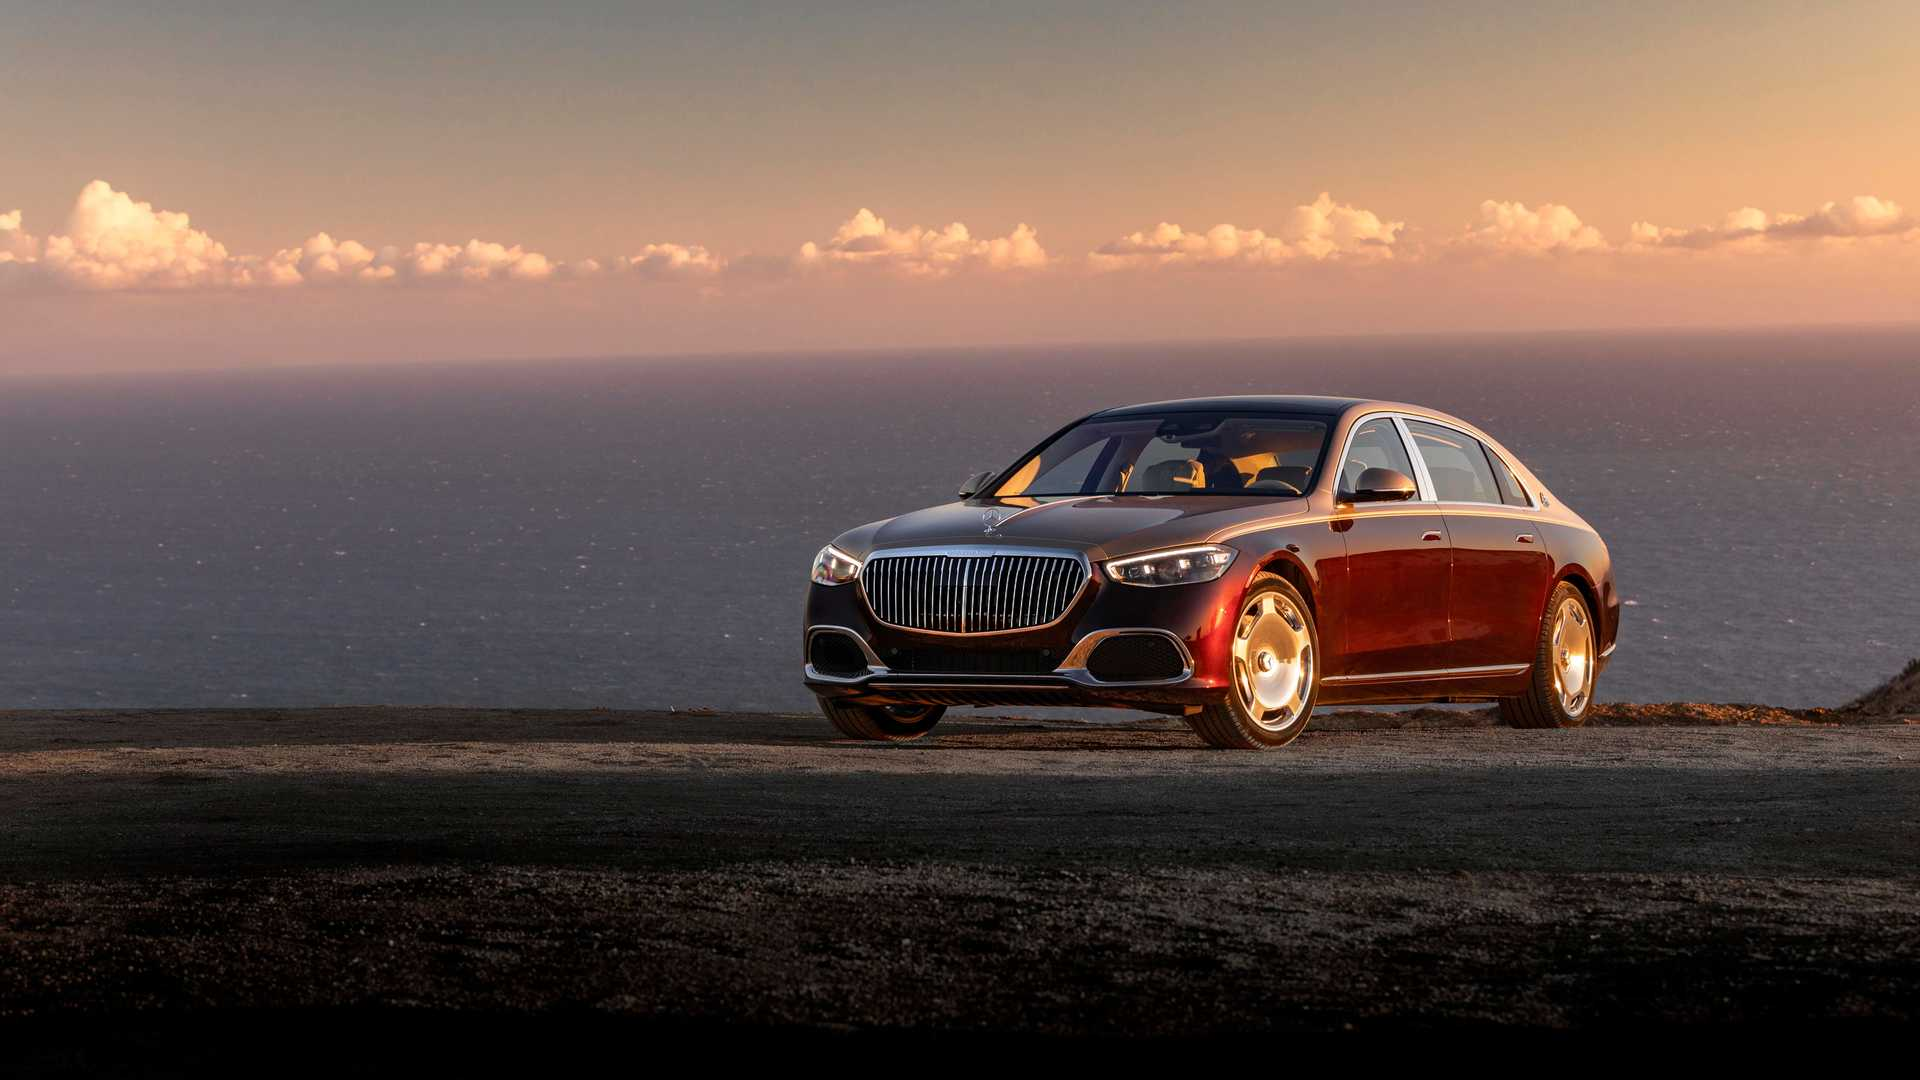 2021 Mercedes Maybach S Class Costs 68600 More Than Benz Model 1920x1080